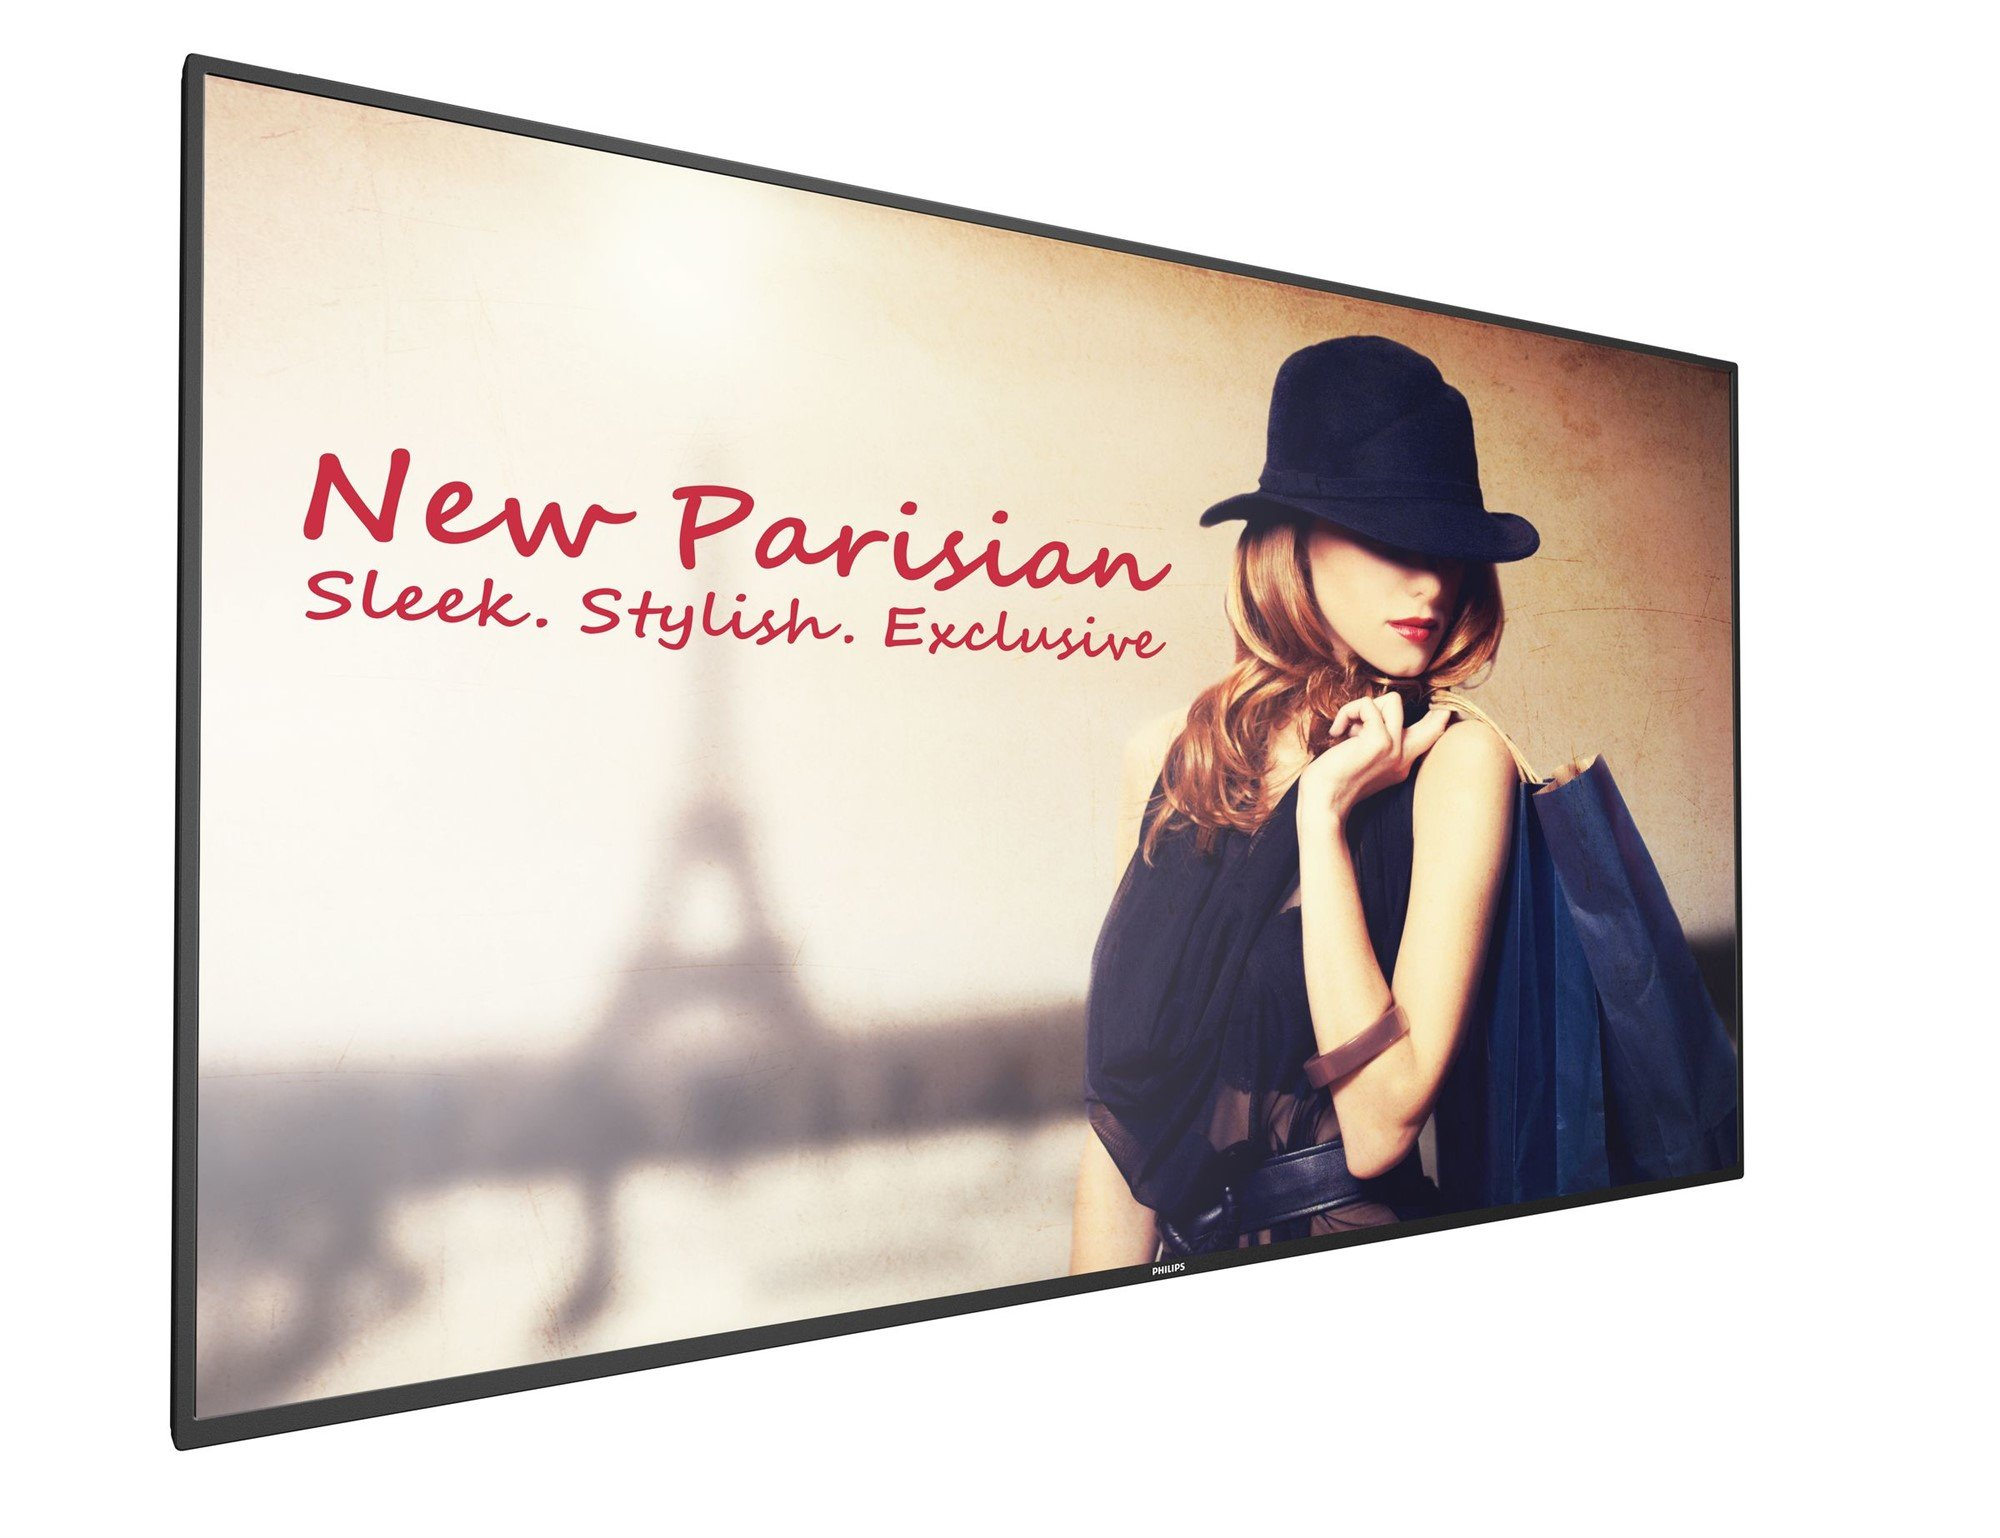 Philips 43BDL4050D 43 Display D-Line w/450cd/mý E-LED, IPS, 1080p,, 43BDL4050D_00 (w/450cd/mý E-LED, IPS, 1080p, Android, HTML5 browser & Wi-Fi - Landscape 16/7 - Portrait 12/7)